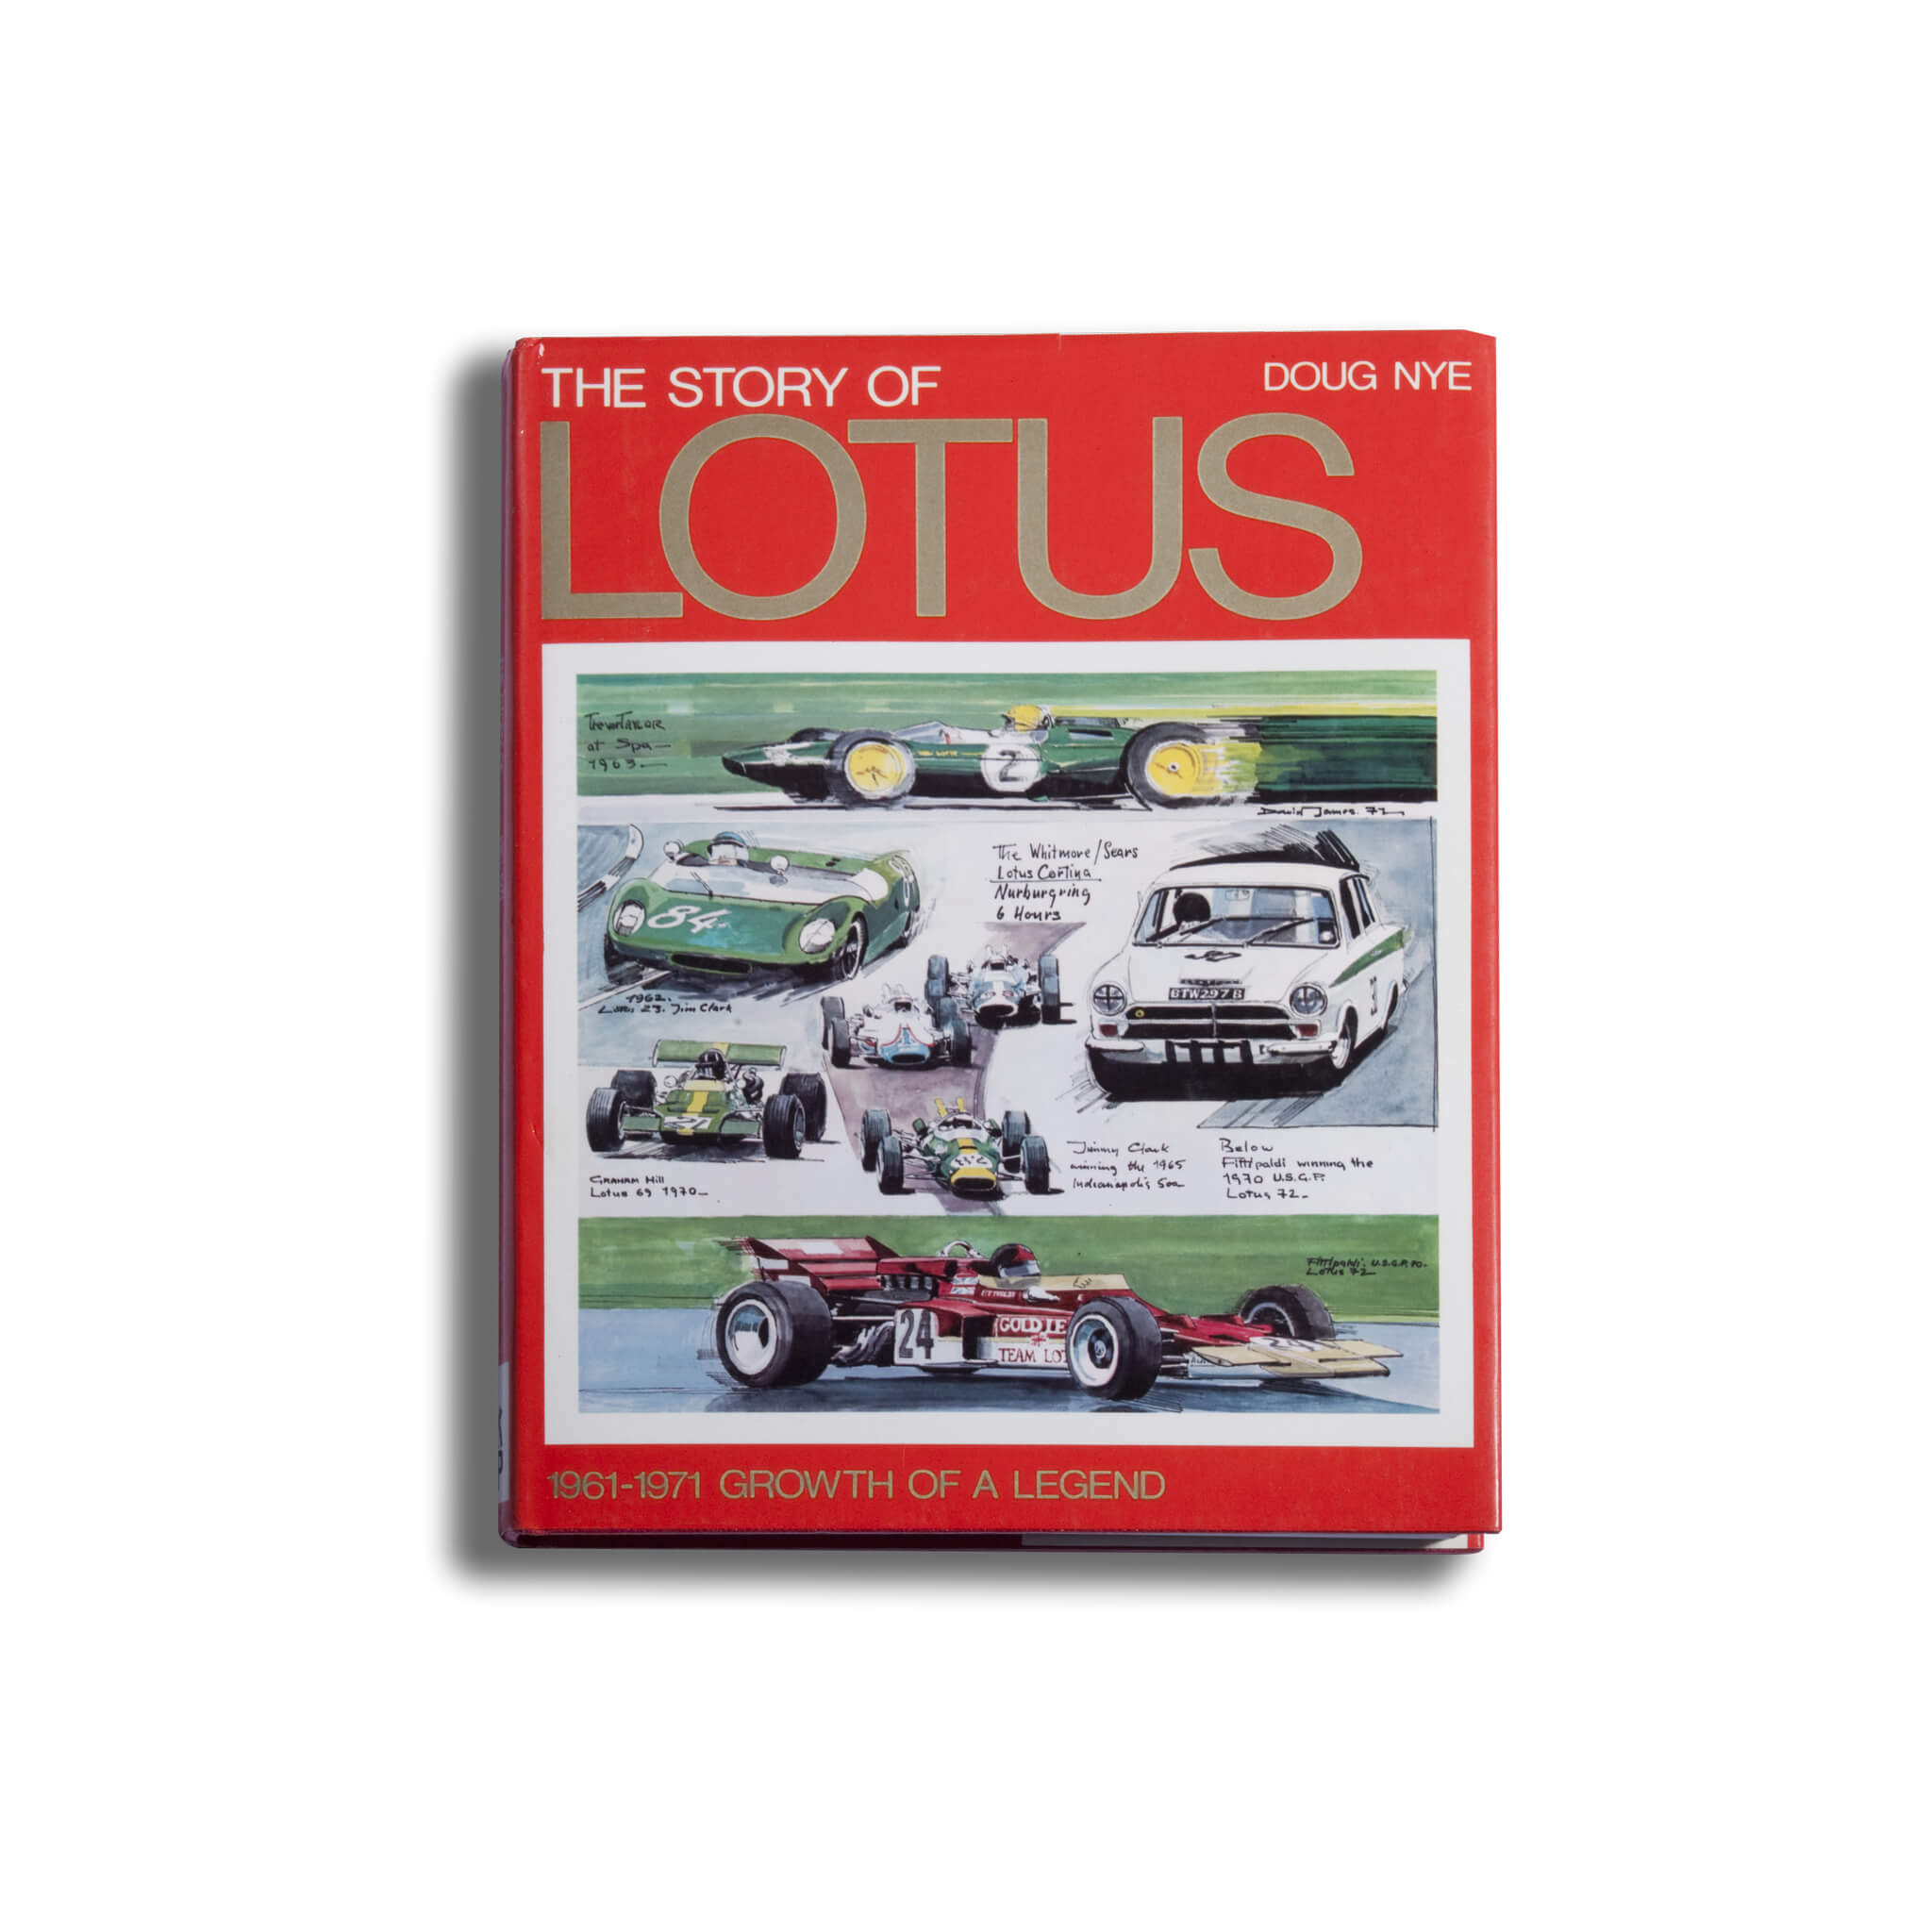 The Story of Lotus, 1961-71: Growth of a Legend